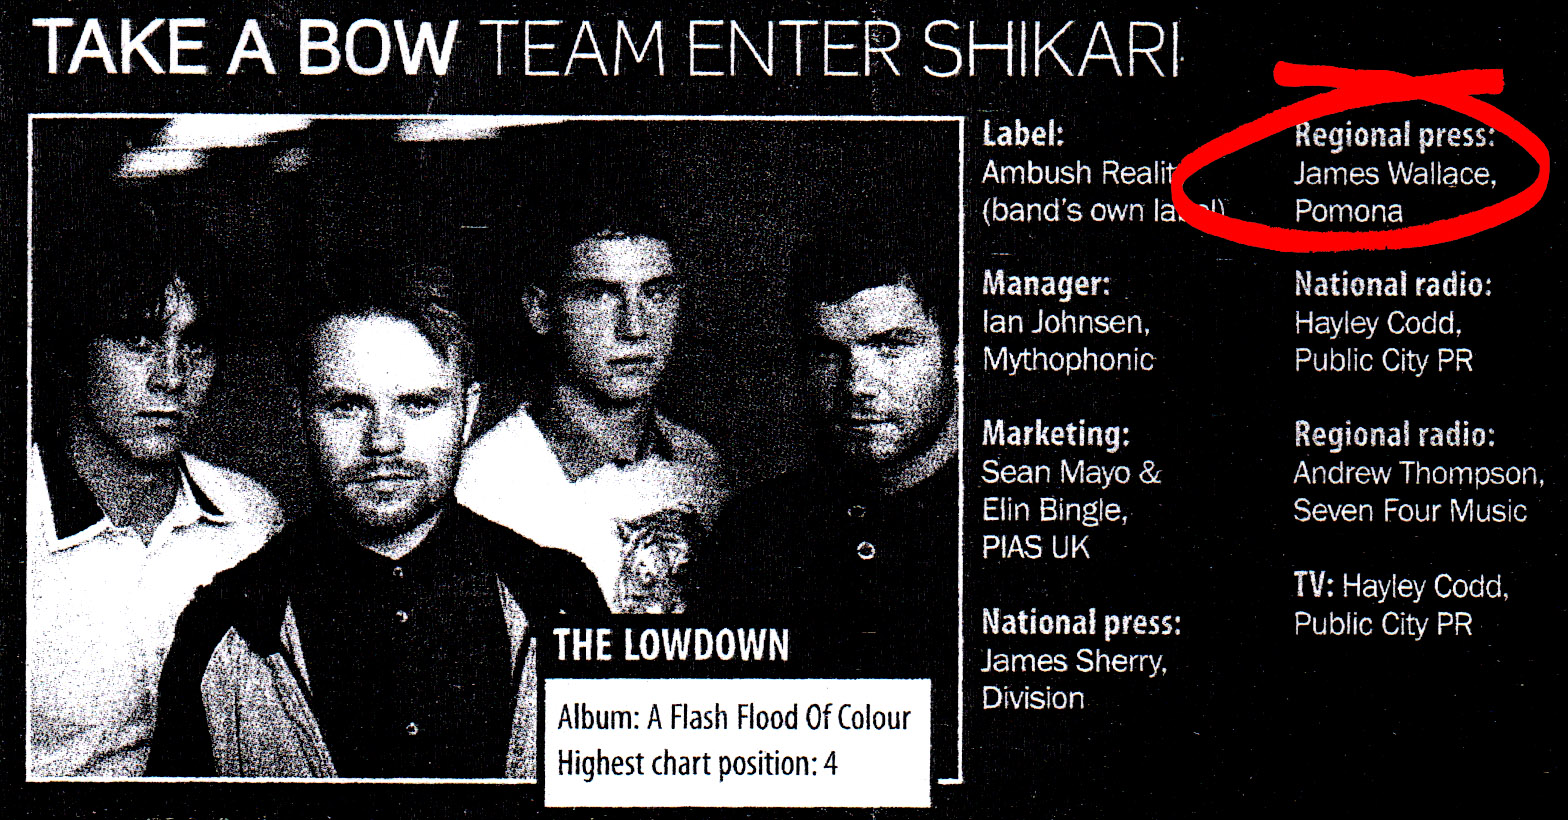 5 Enter Shikari Pomona regional press campaign